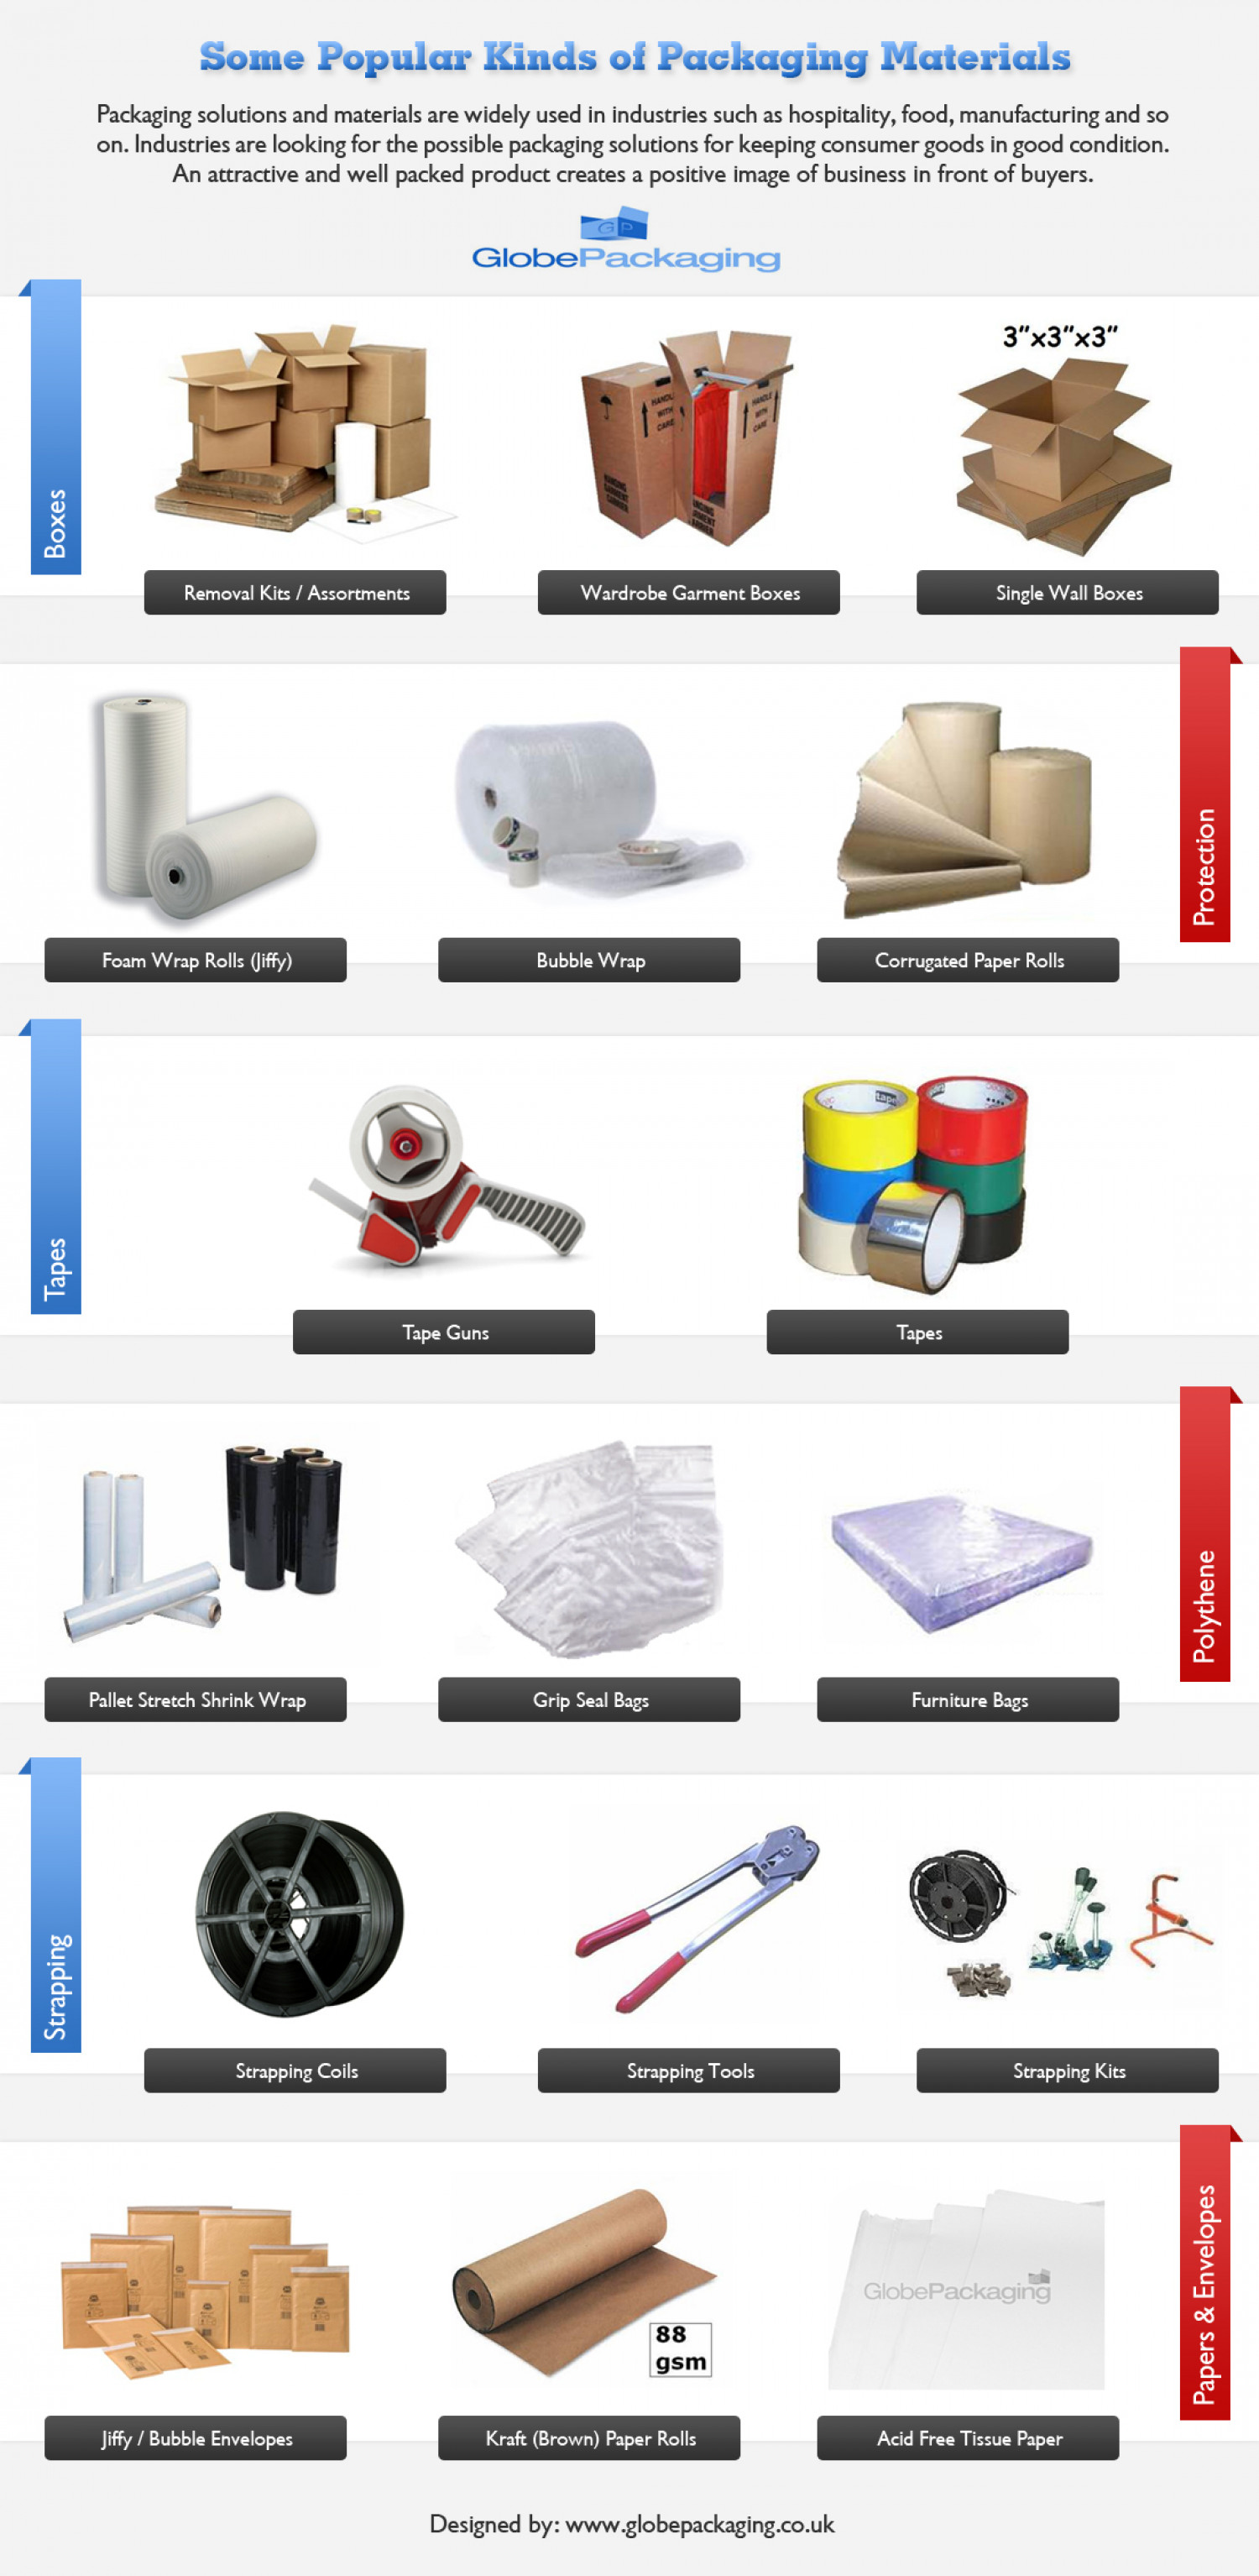 Some Popular Kinds of Packaging Materials Infographic